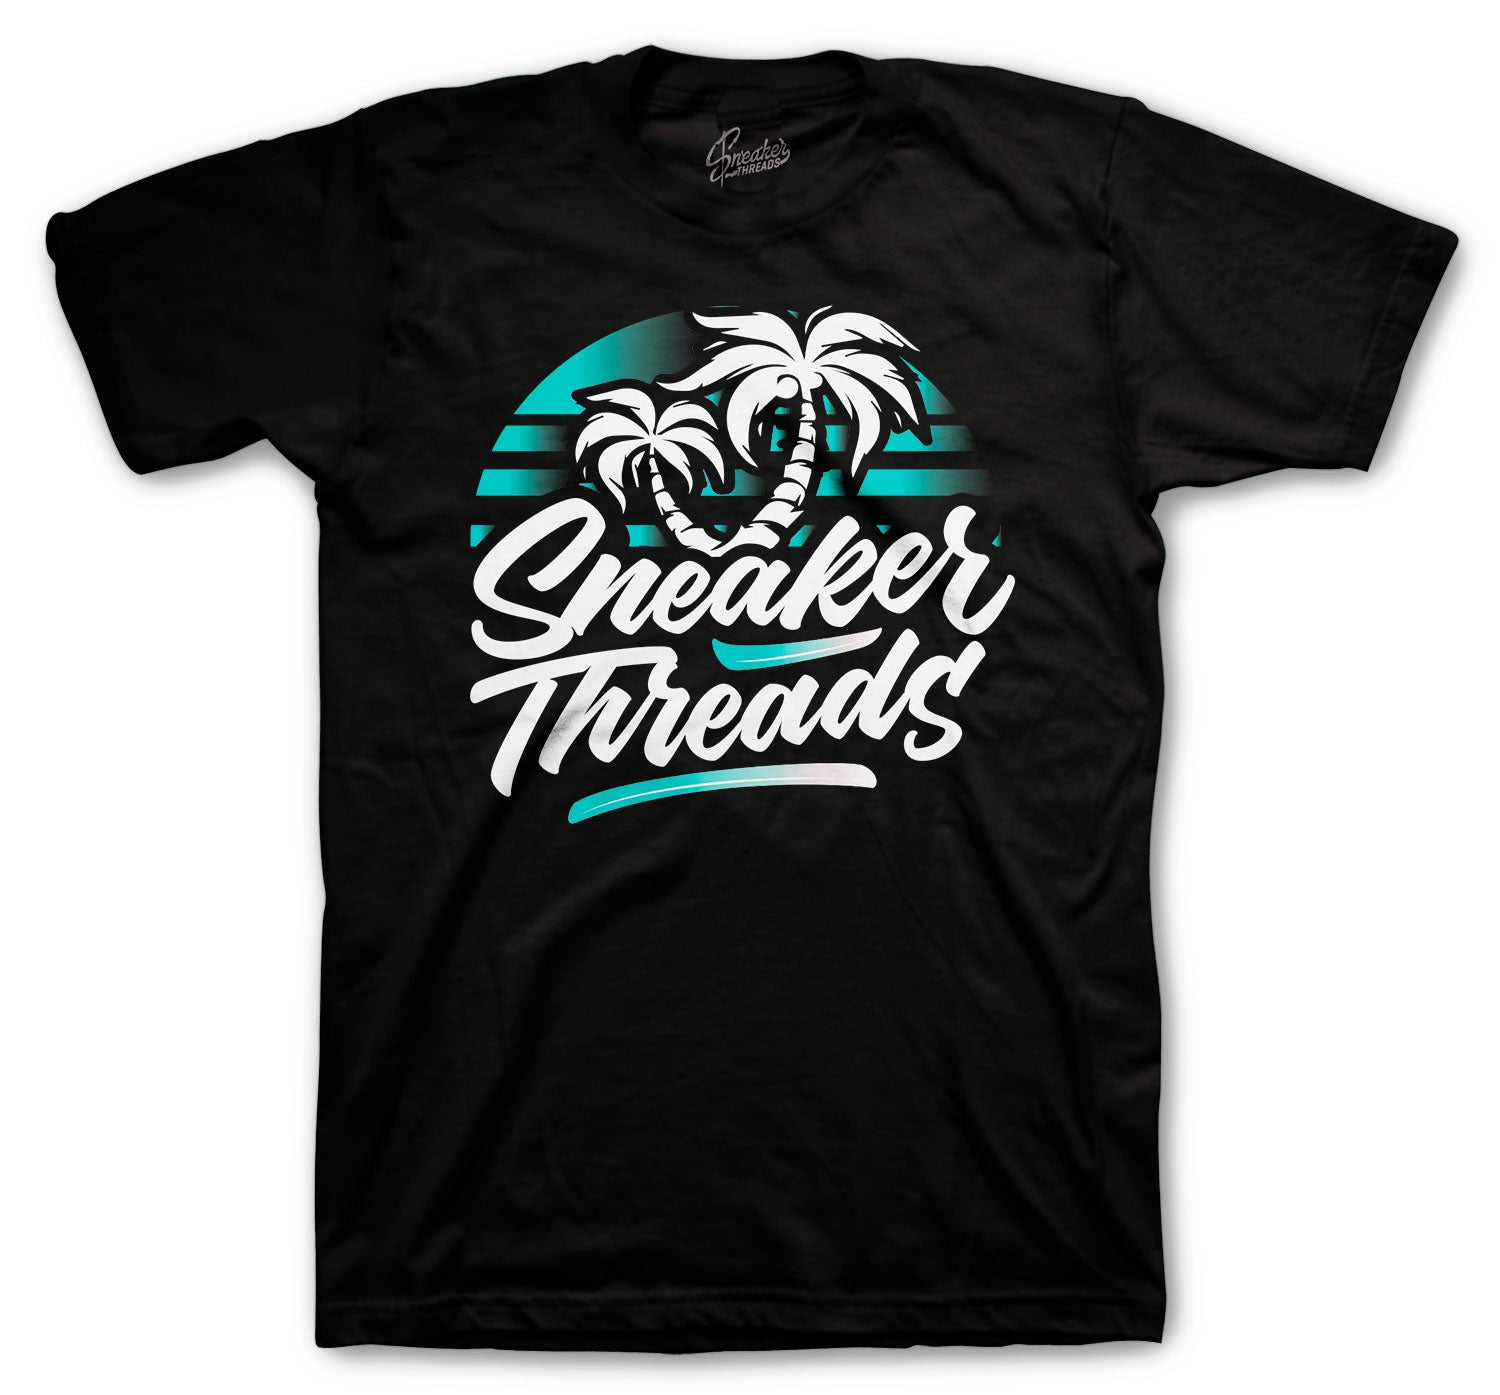 Island green Jordan 5 sneaker tees and matching shirts for 5s